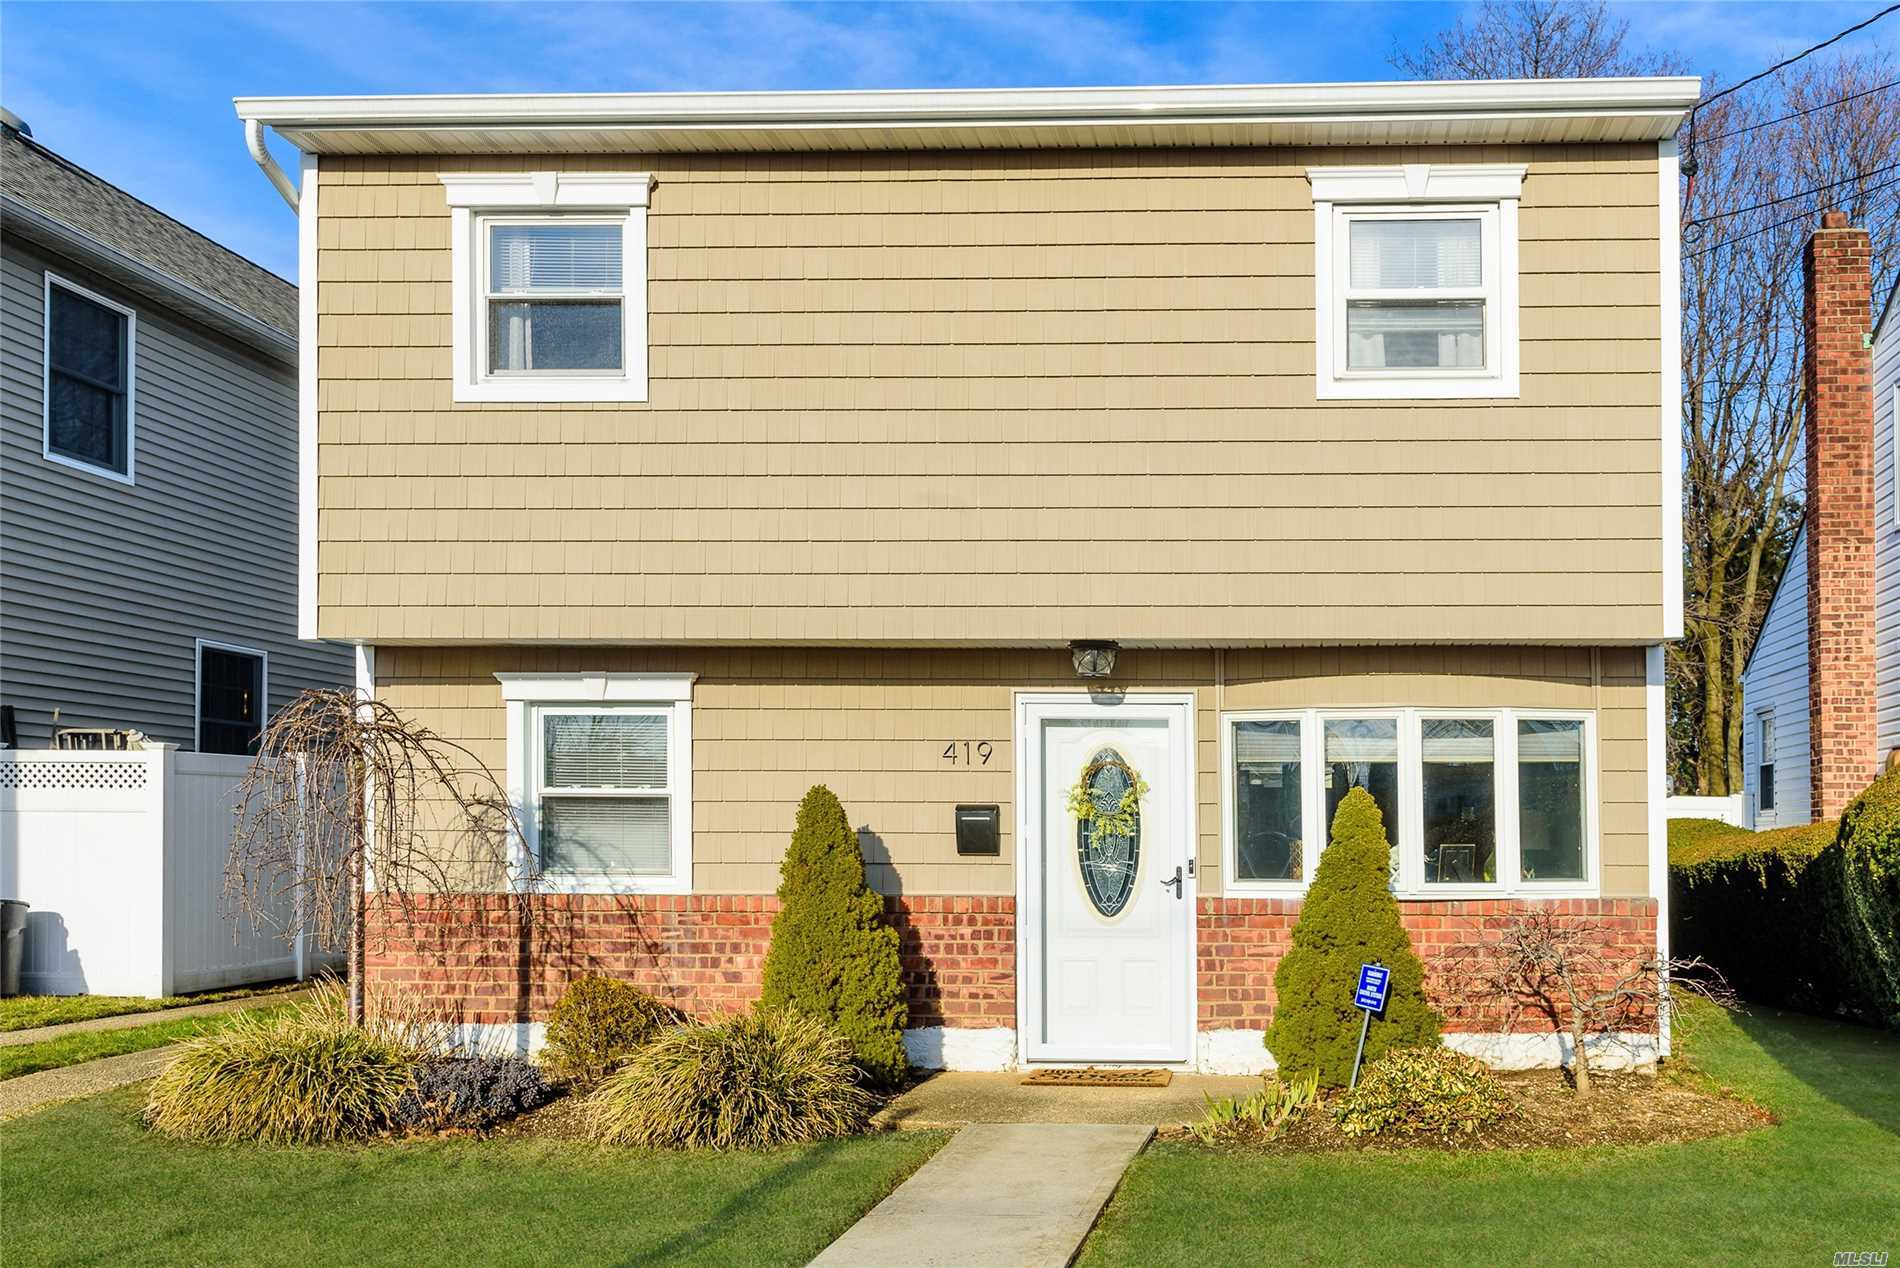 419 Gates Ave - East Meadow, New York